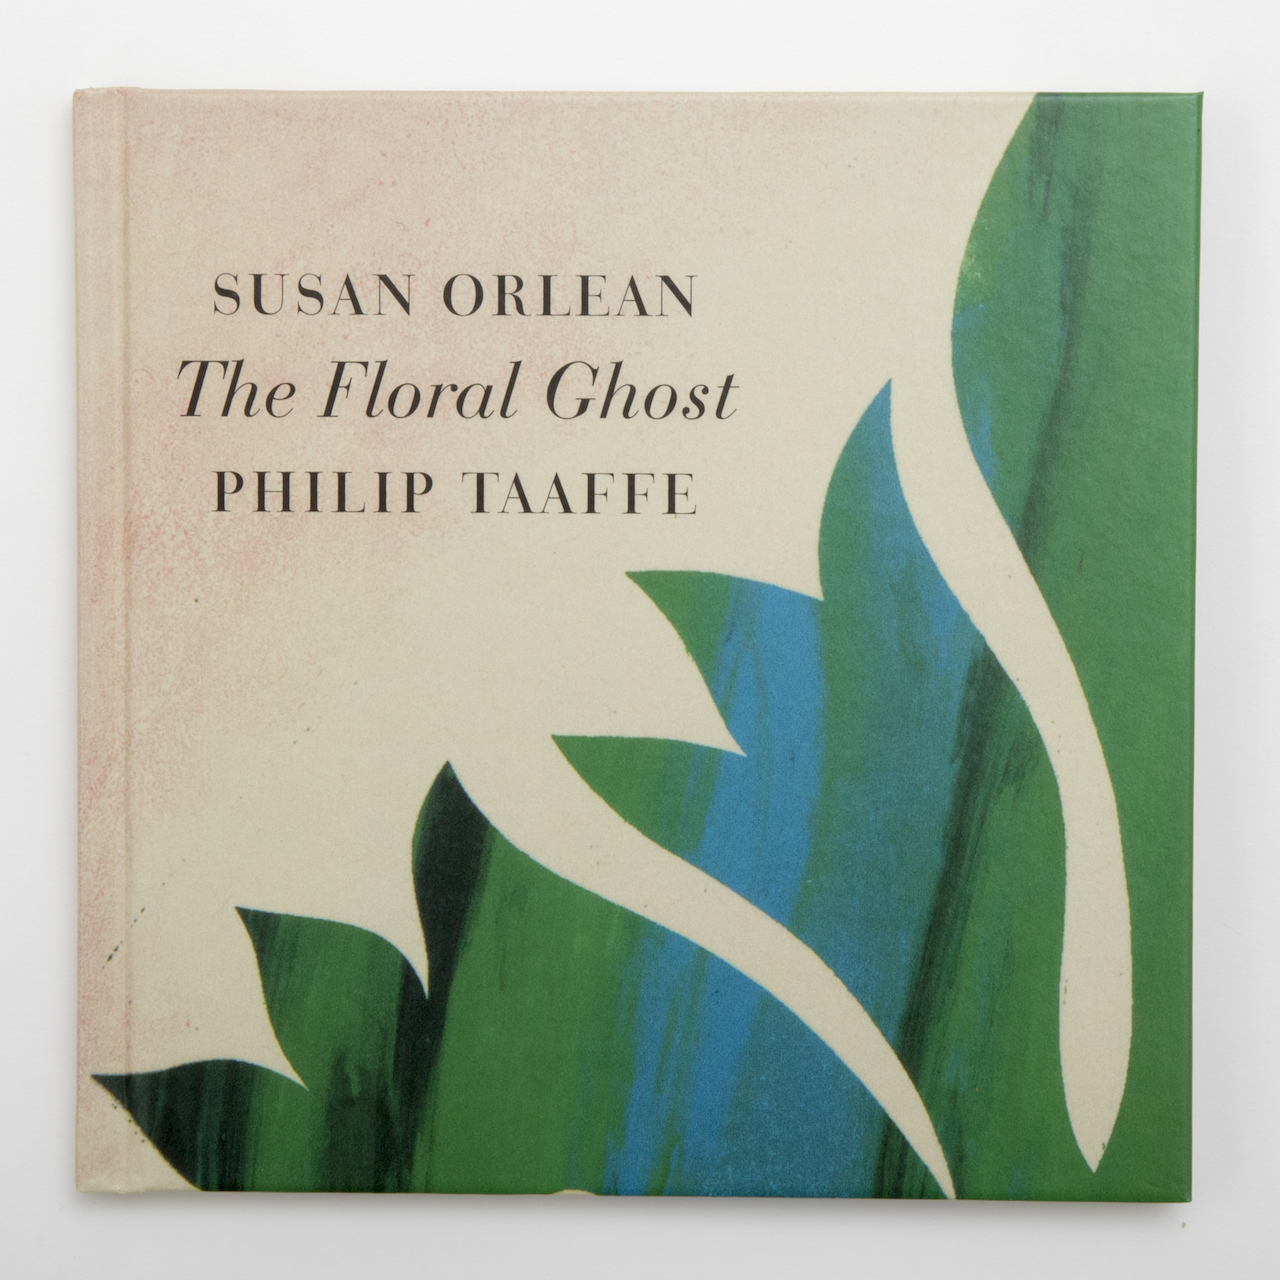 Cover of 'The Floral Ghost' (courtesy Planthouse)